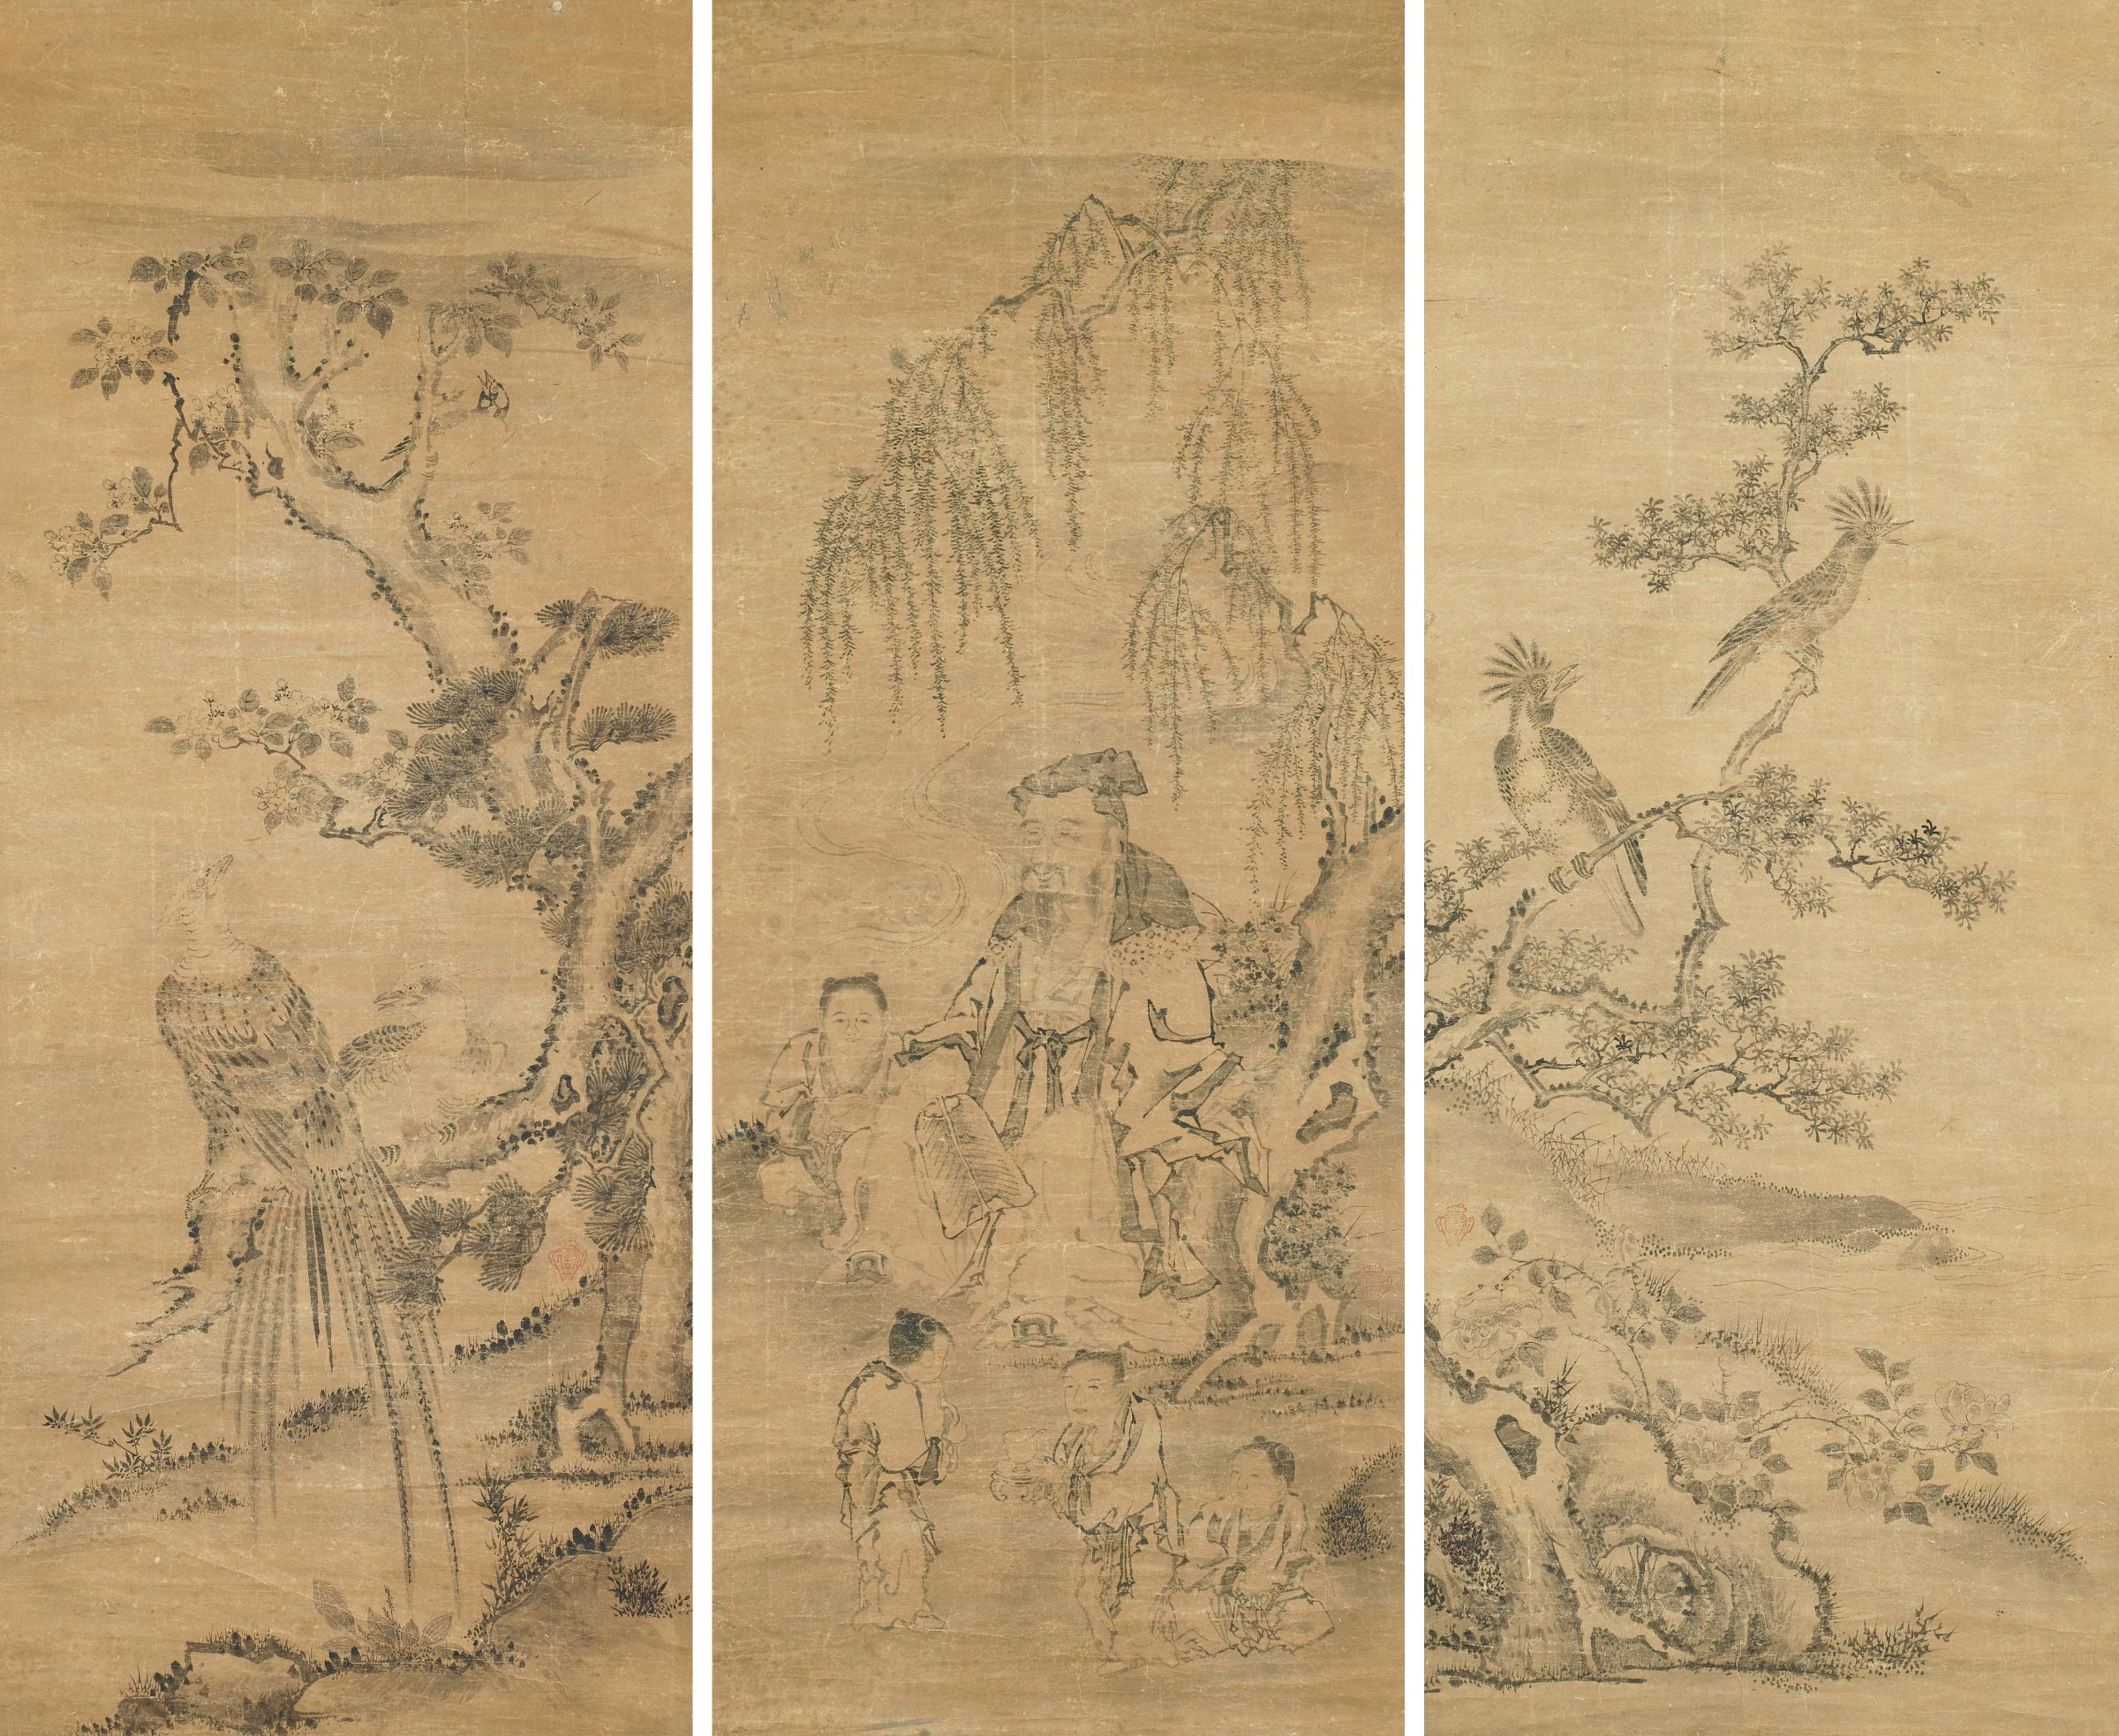 Set of three hanging scrolls. A. Two birds on branches facing right, B. Guo Ziyi surrounded by four children, C. Two birds on branches facing left